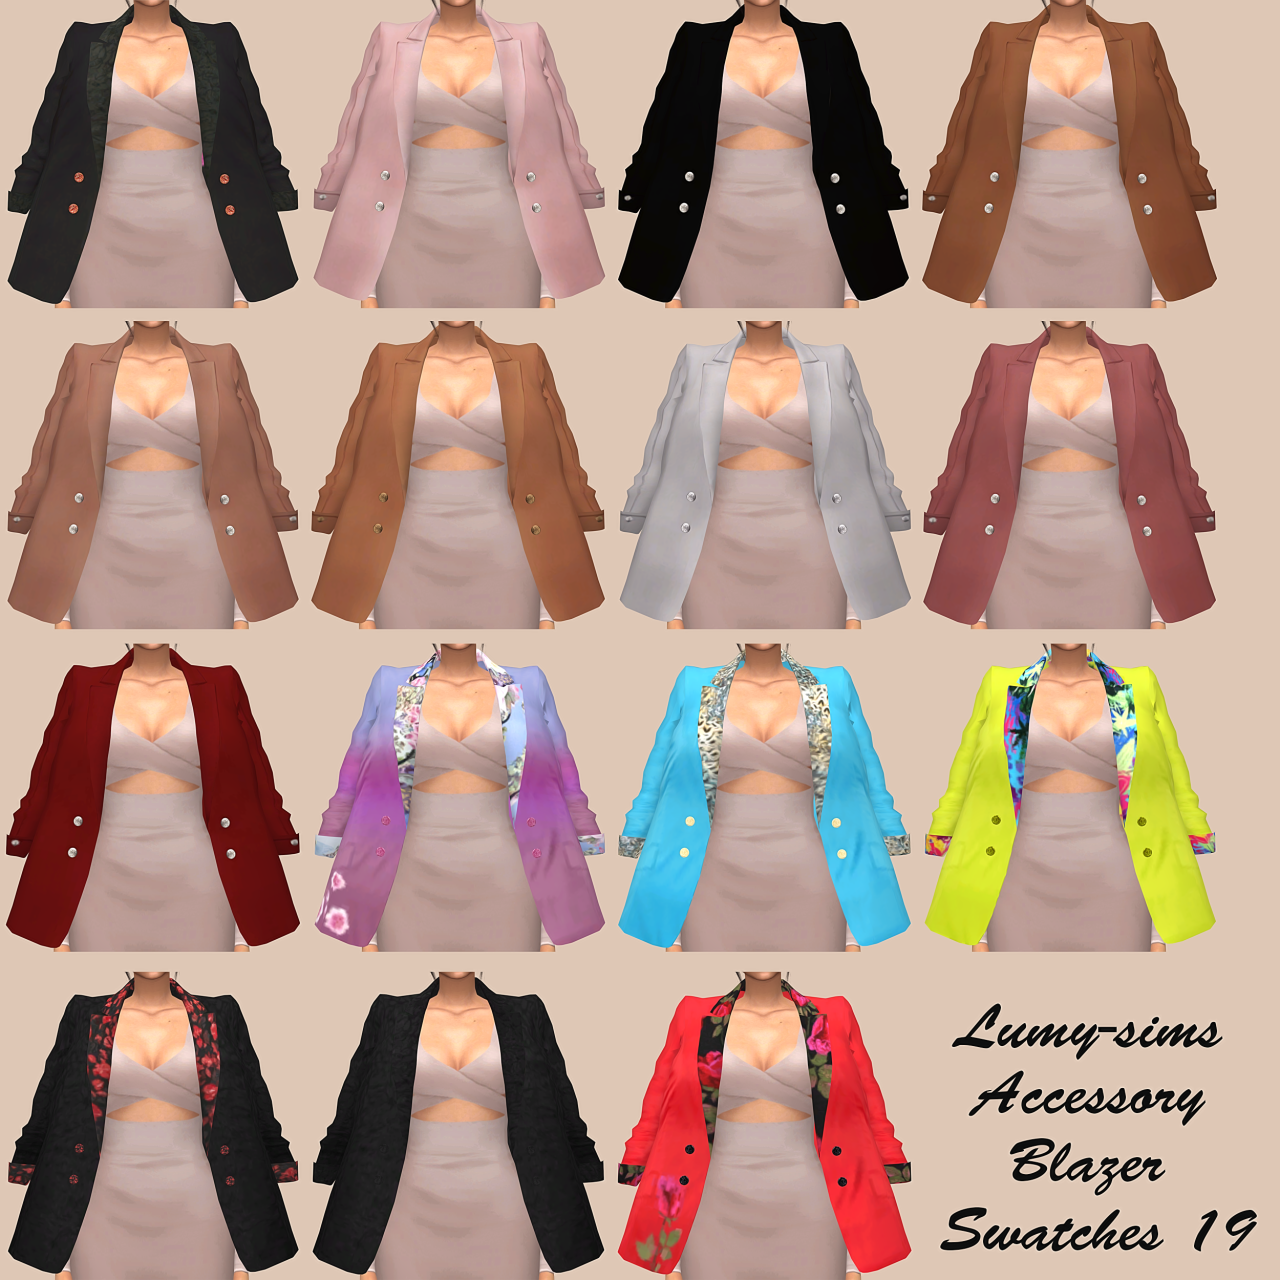 sims 4 cc's - the best: accessory blazer by lumy sims, Badezimmer ideen